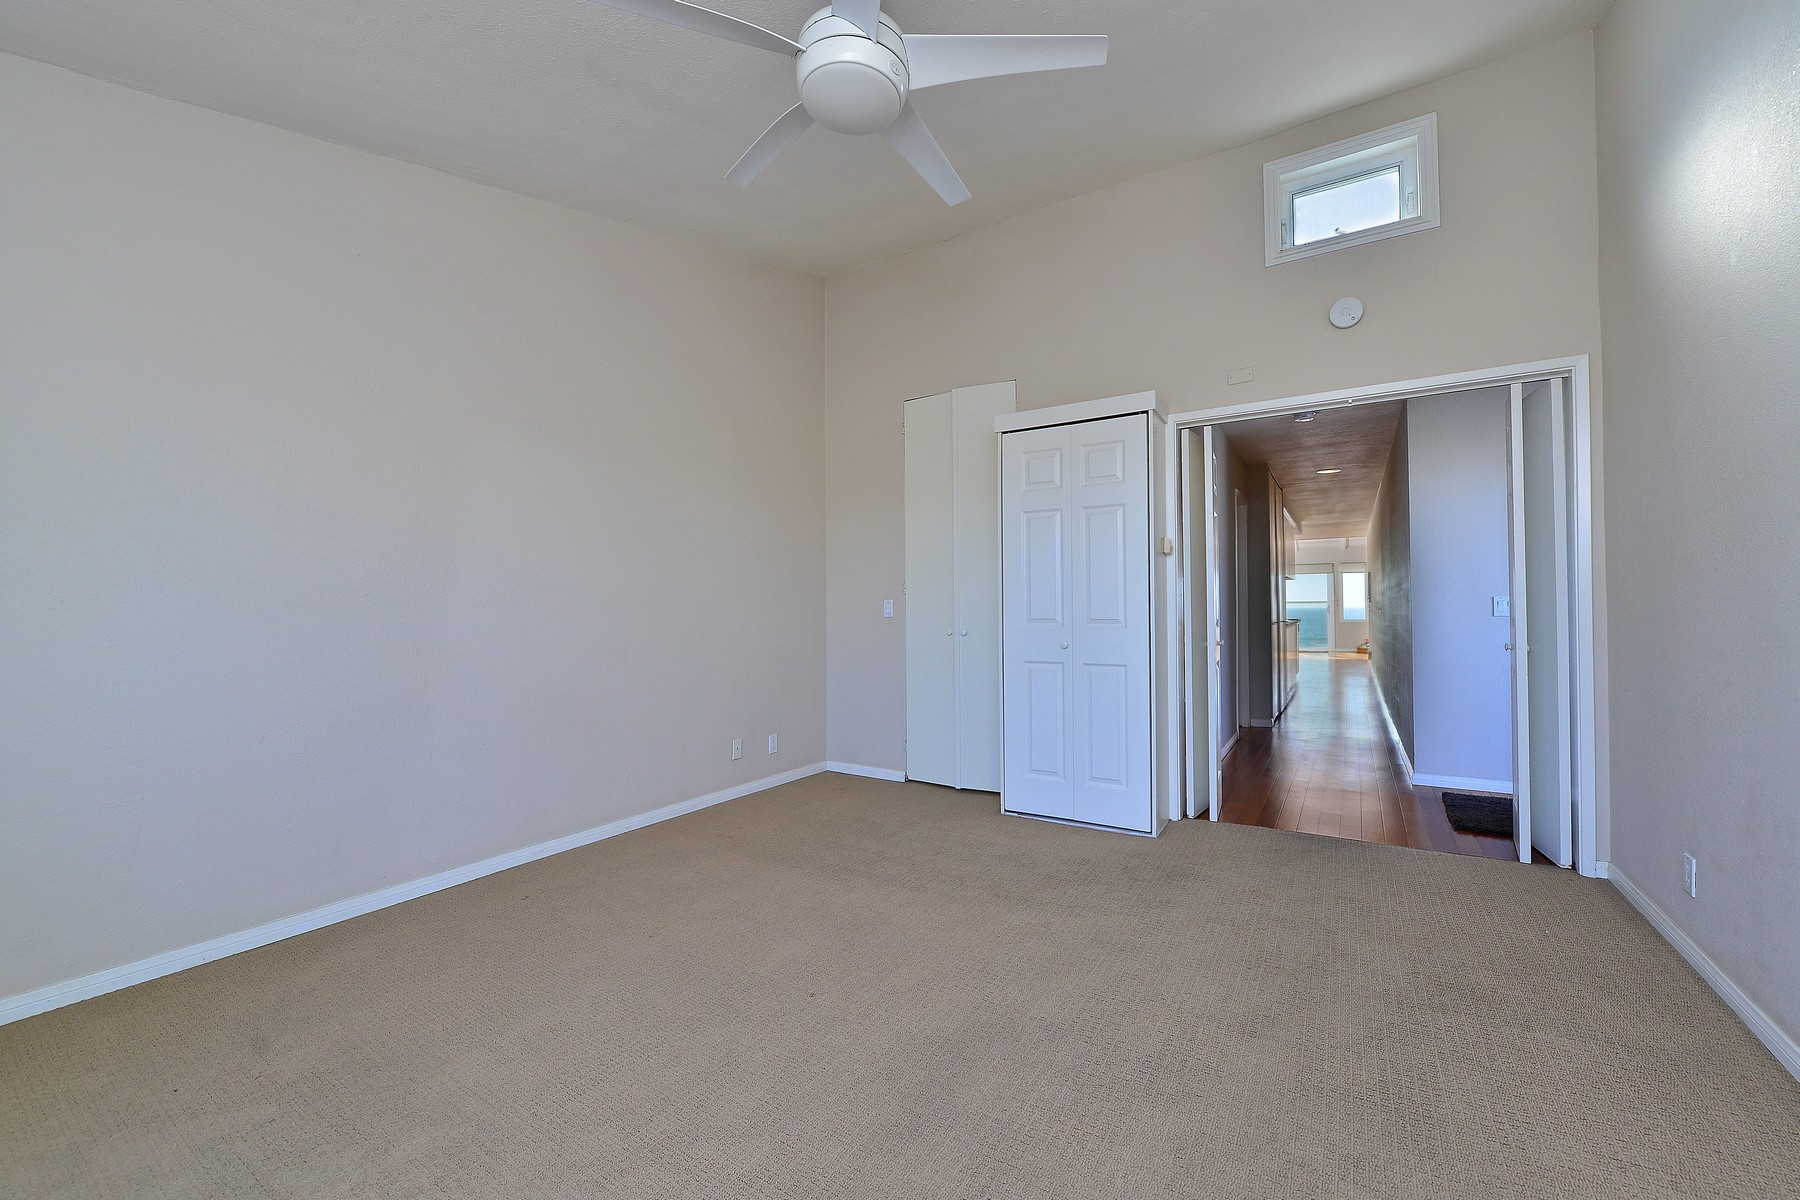 Additional photo for property listing at 1548 Seacoast Dr.  Imperial Beach, California 91932 United States